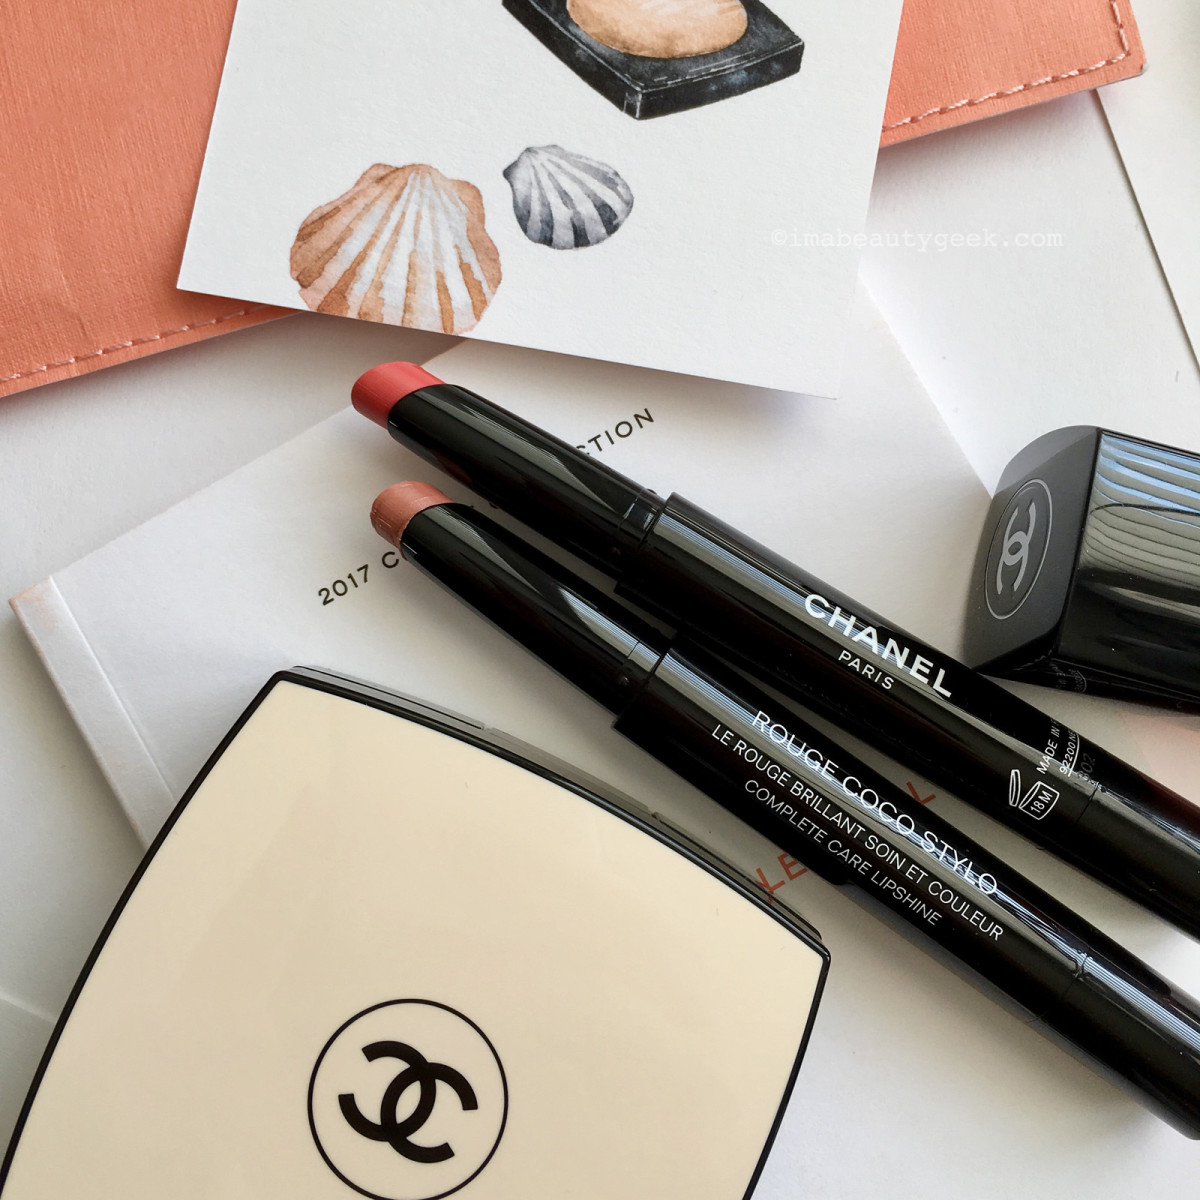 CHANEL Summer 2017 Cruise Collection Rouge Coco Stylo in Panorama and Esquisse